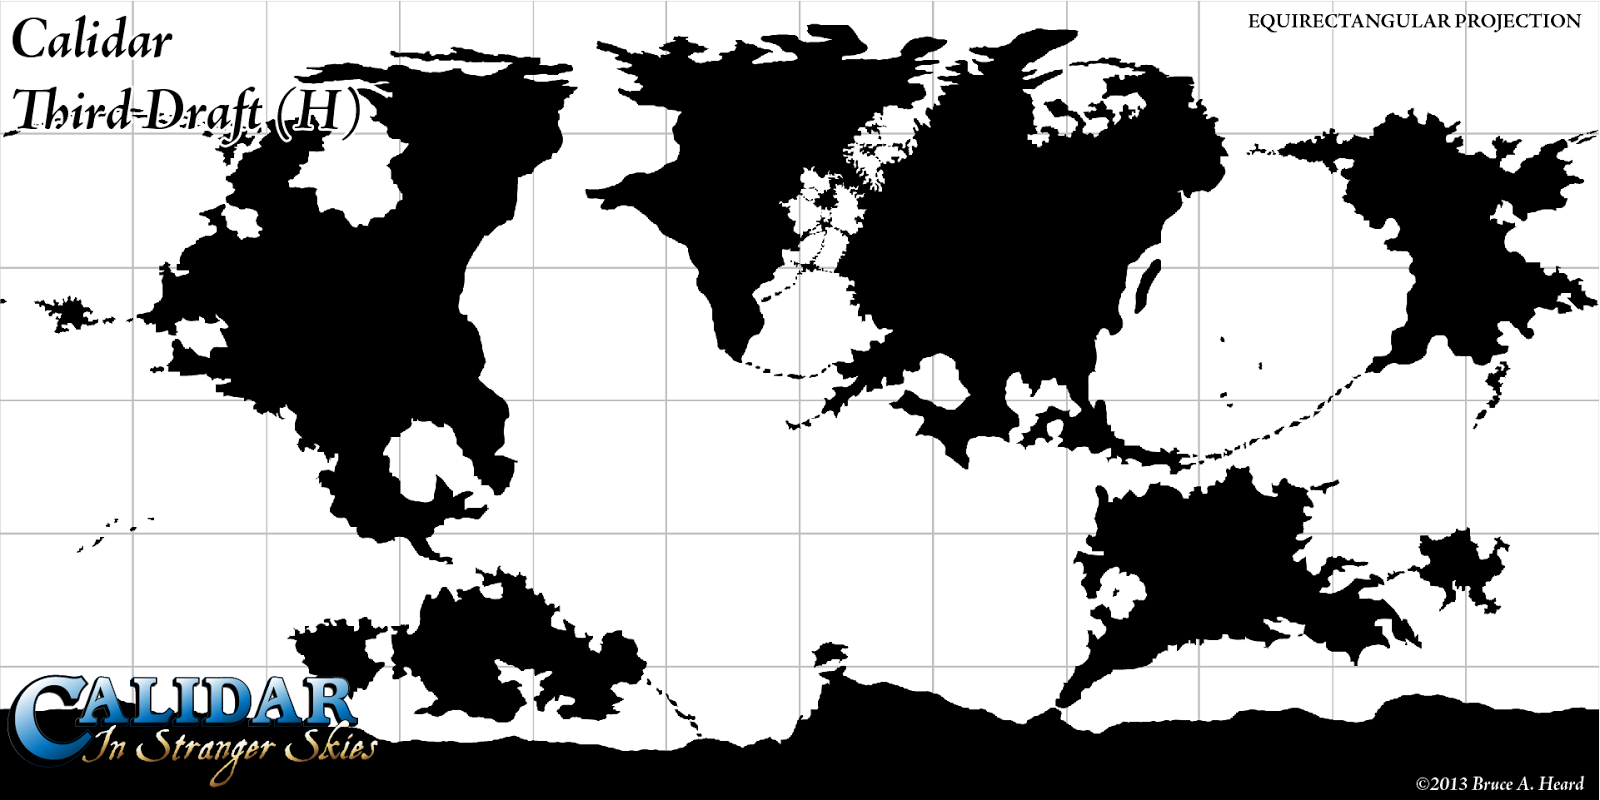 The cartography of thorfinn tait world building continental the world of calidar third draft world map equirectangular projection gumiabroncs Choice Image